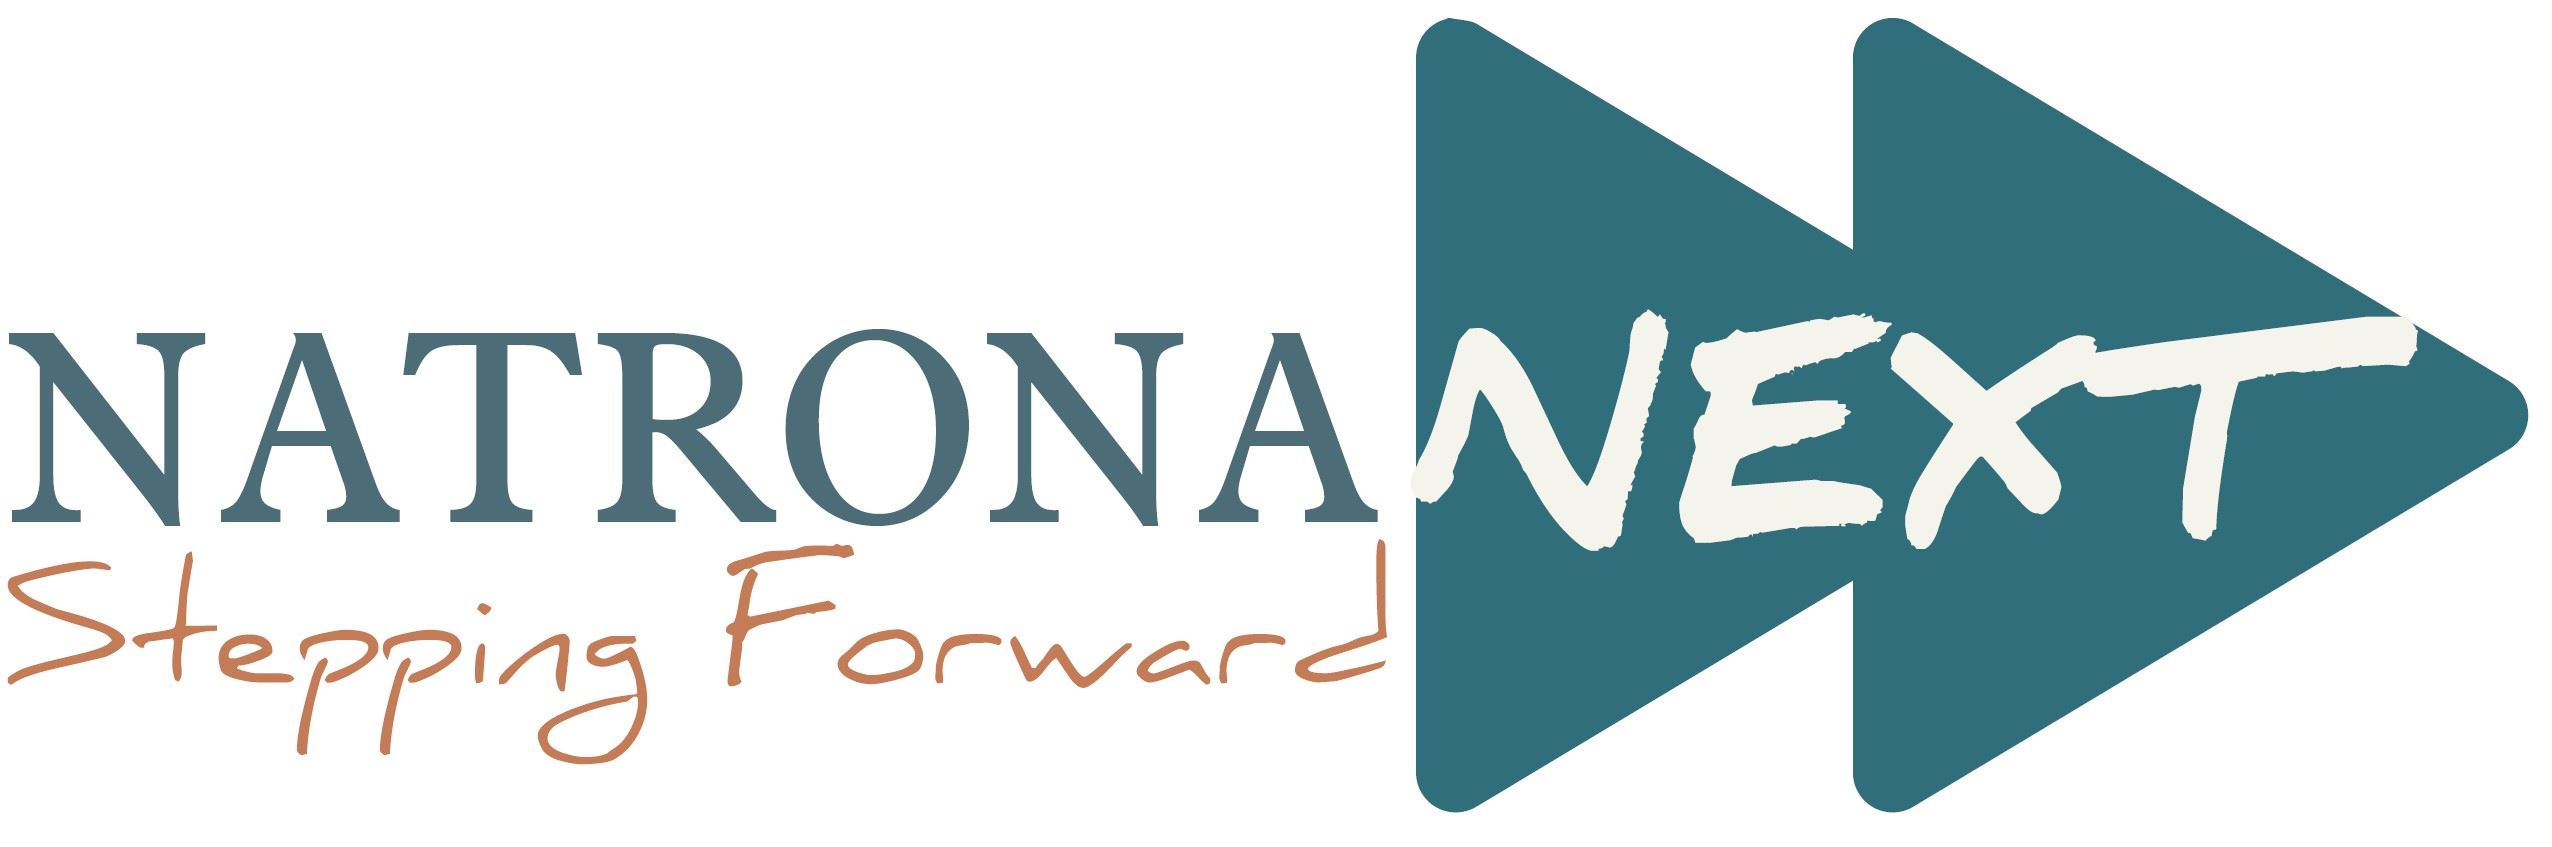 Natrona Next Stepping Forward Graphic